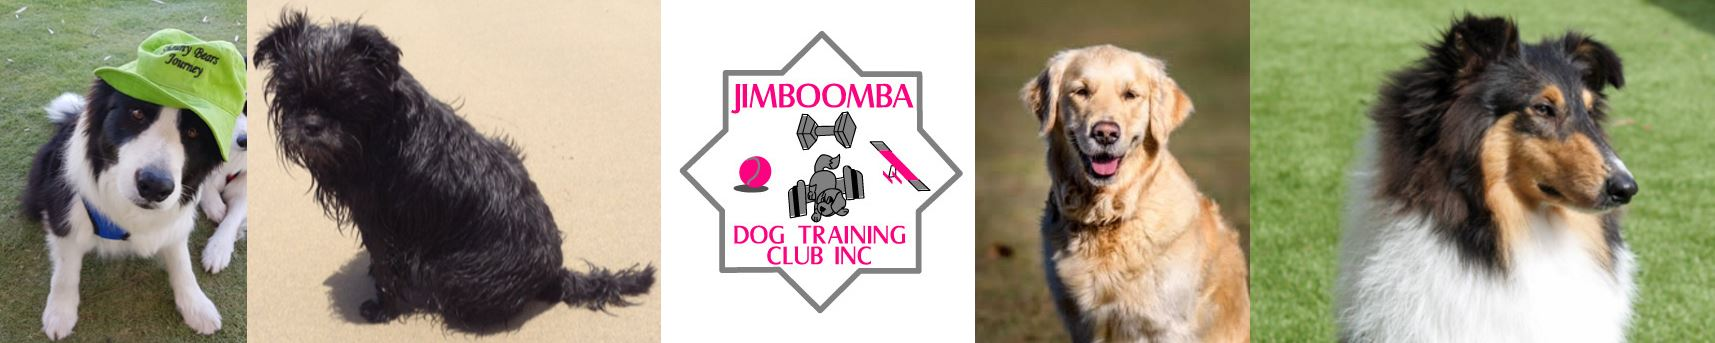 Jimboomba Dog Training Club